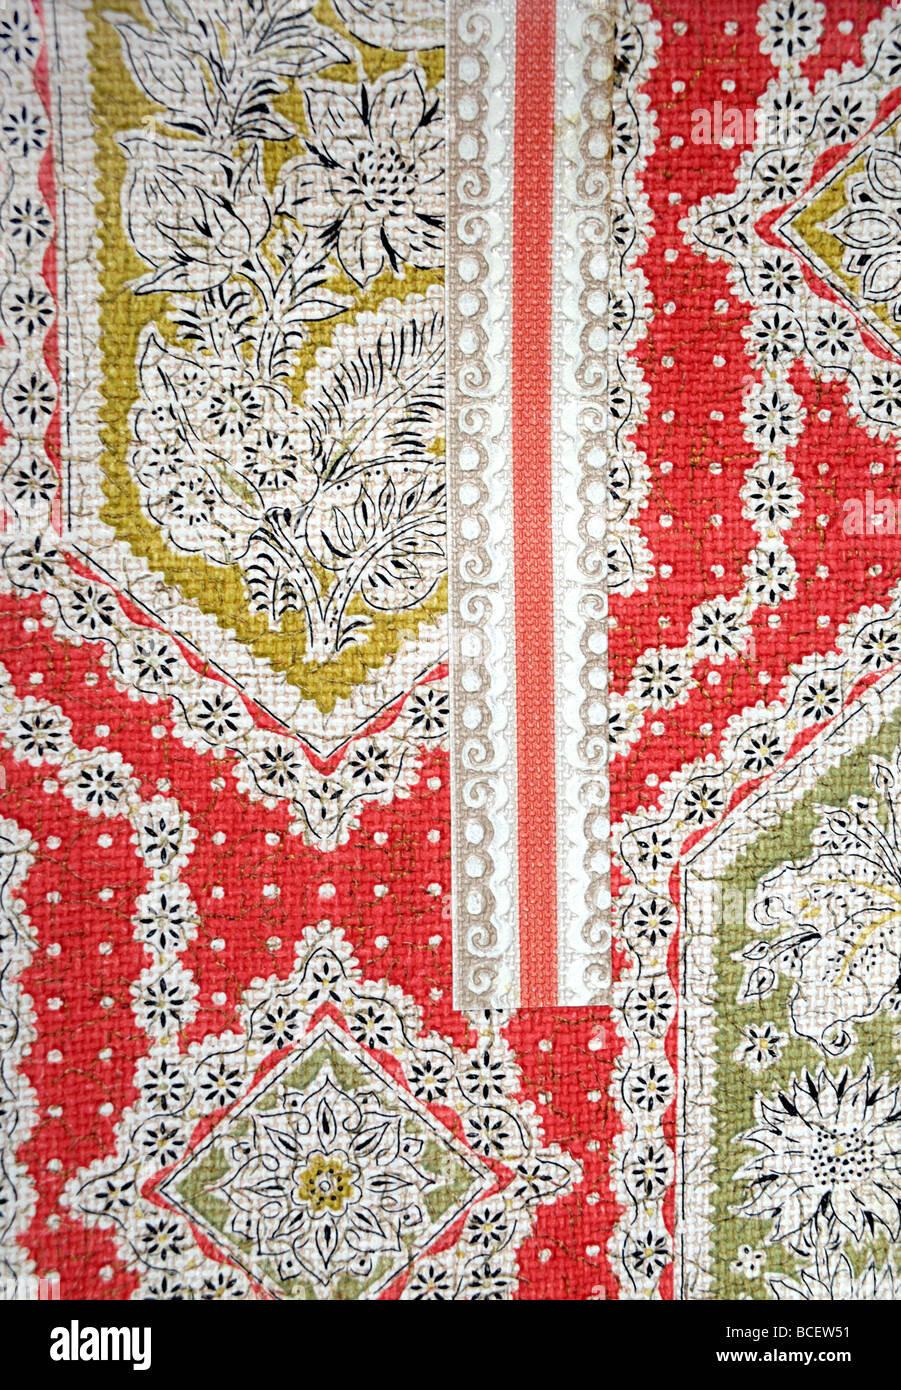 Detail of a sample of wallpaper  and border from a 1958 wallpaper catalogue. - Stock Image